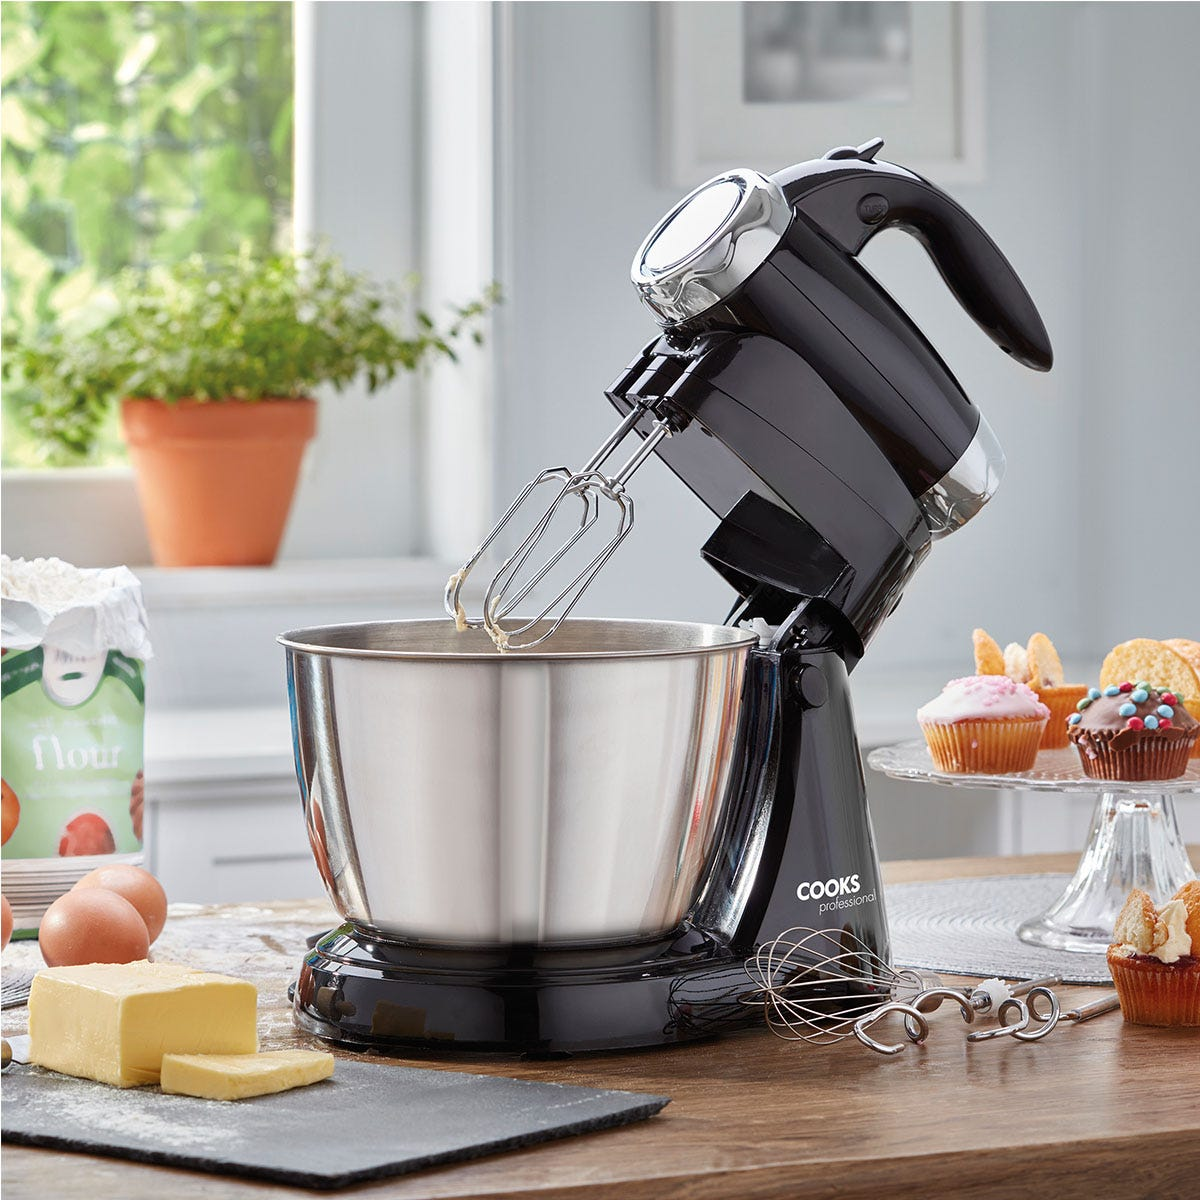 Cooks Professional G3206 2-in-1 Hand Whisk and Stand Mixer - Black and Silver